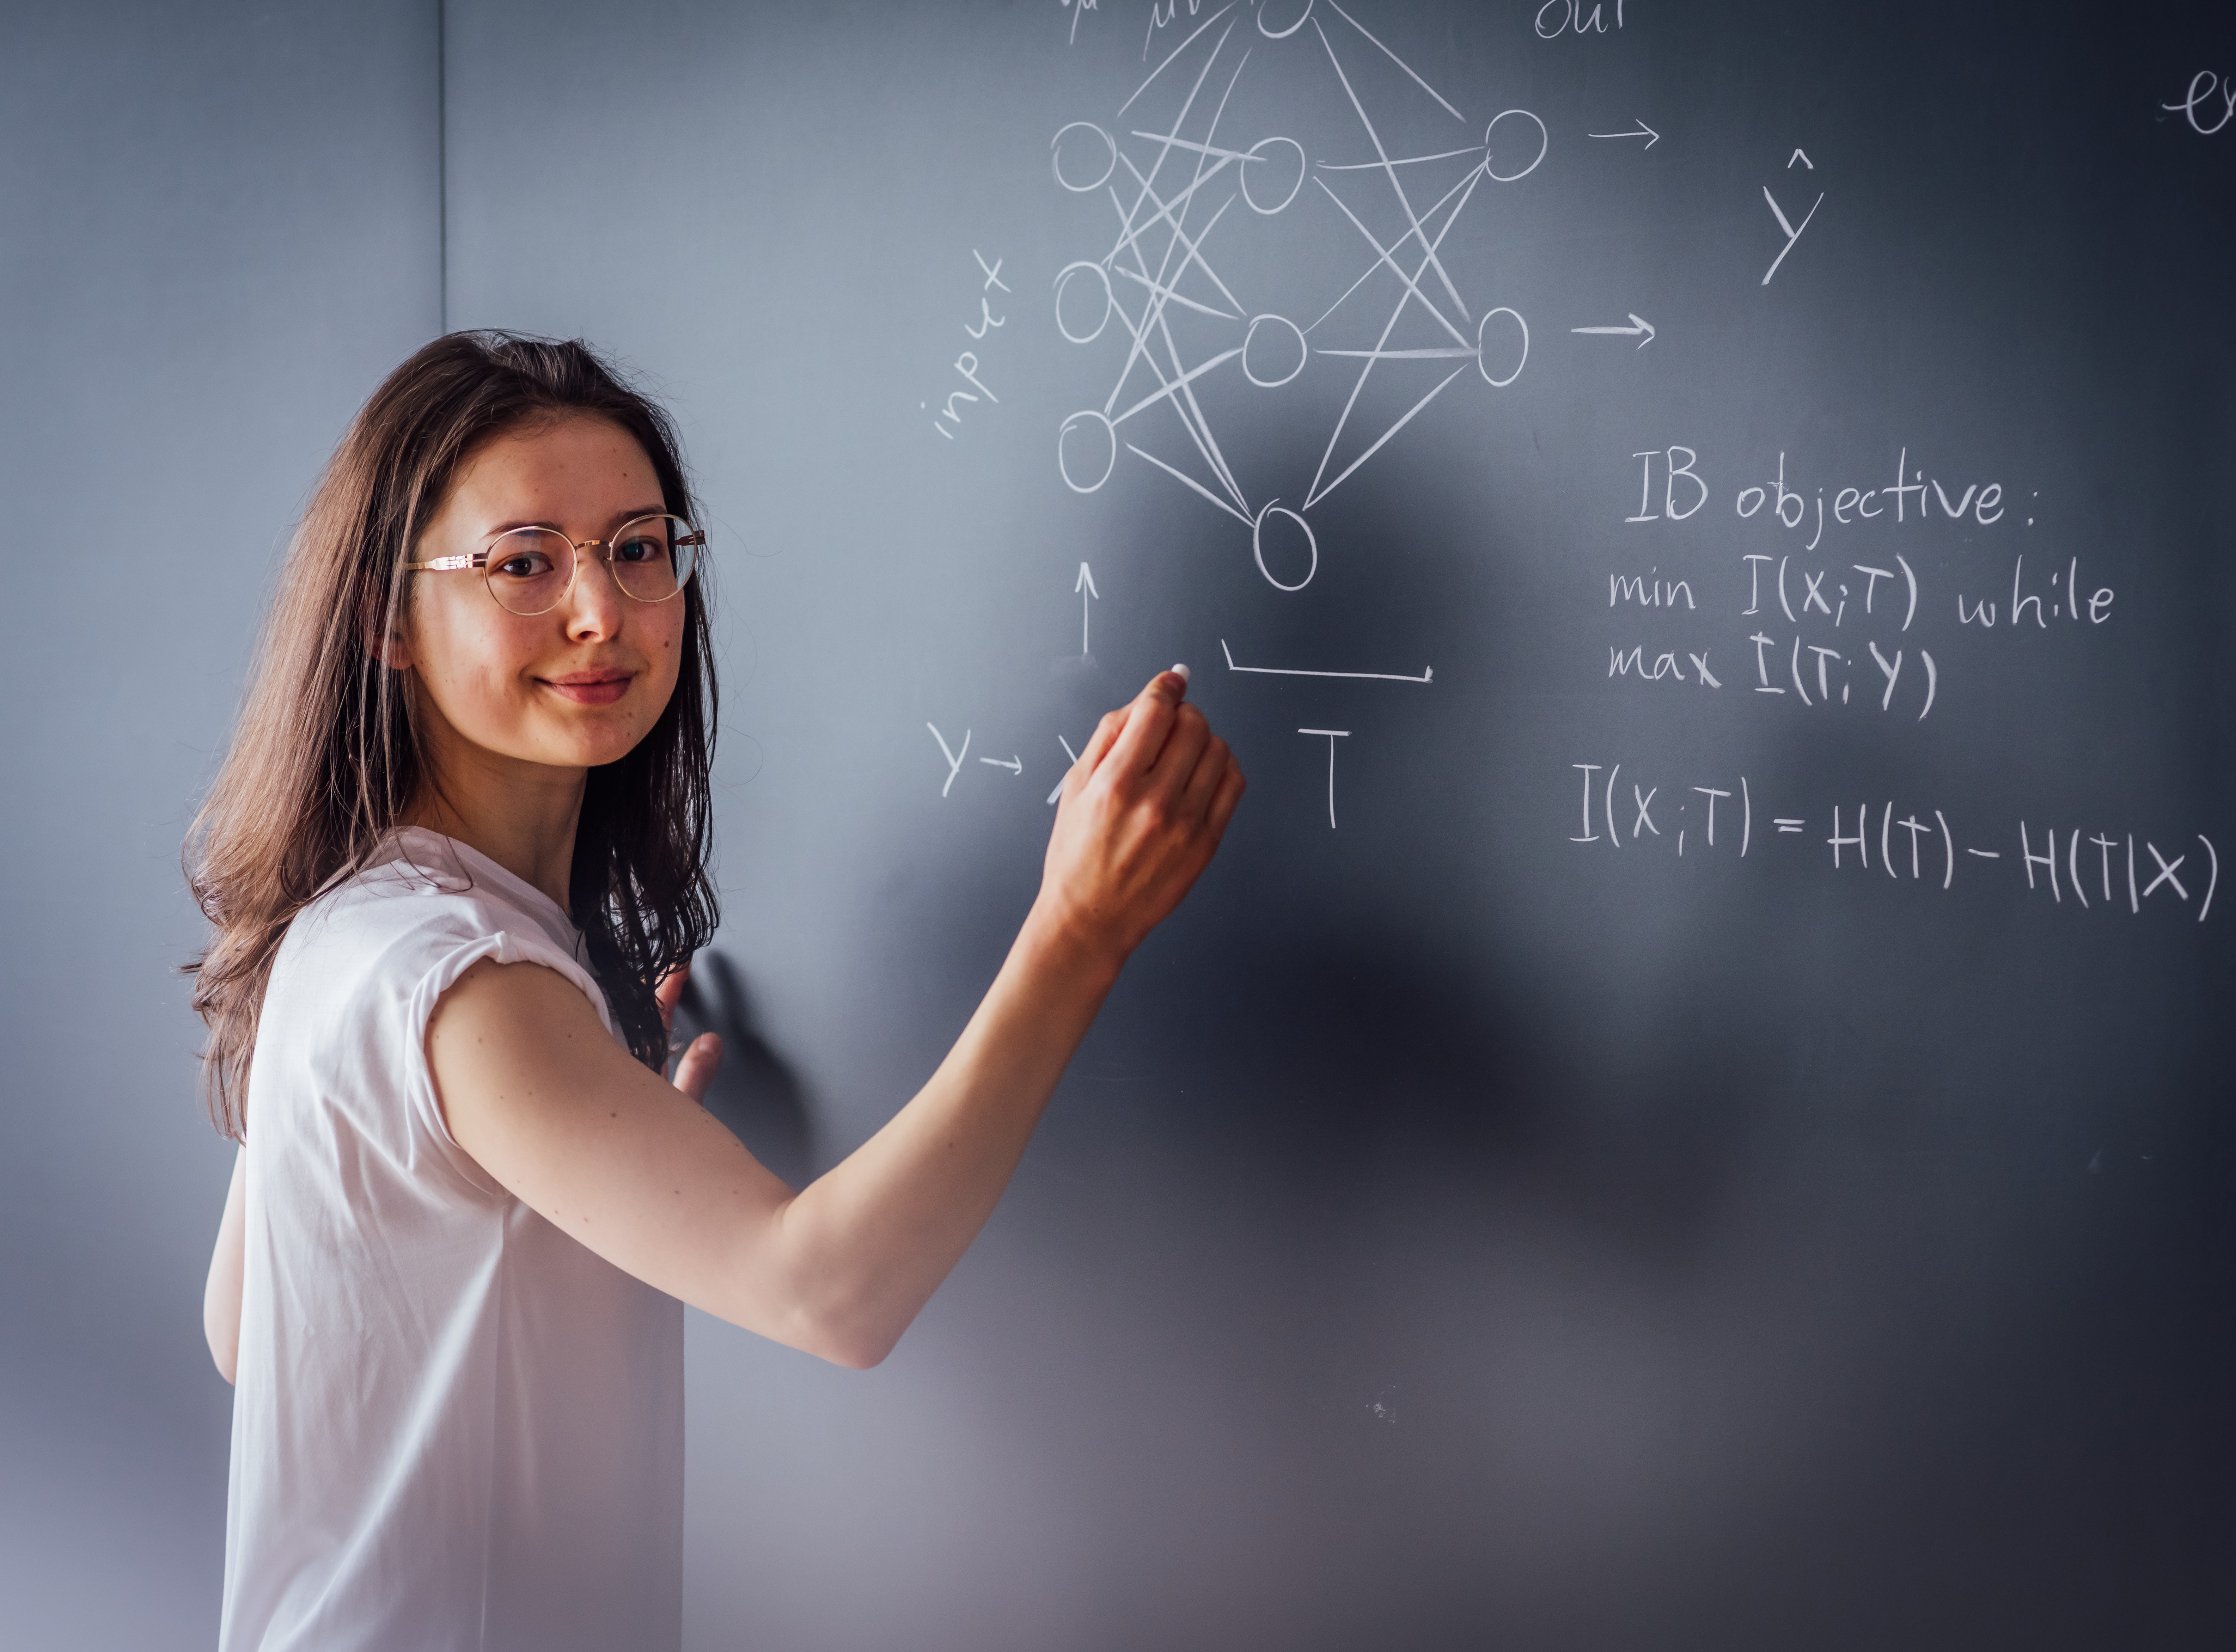 Anna Golubeva in front of a blackboard